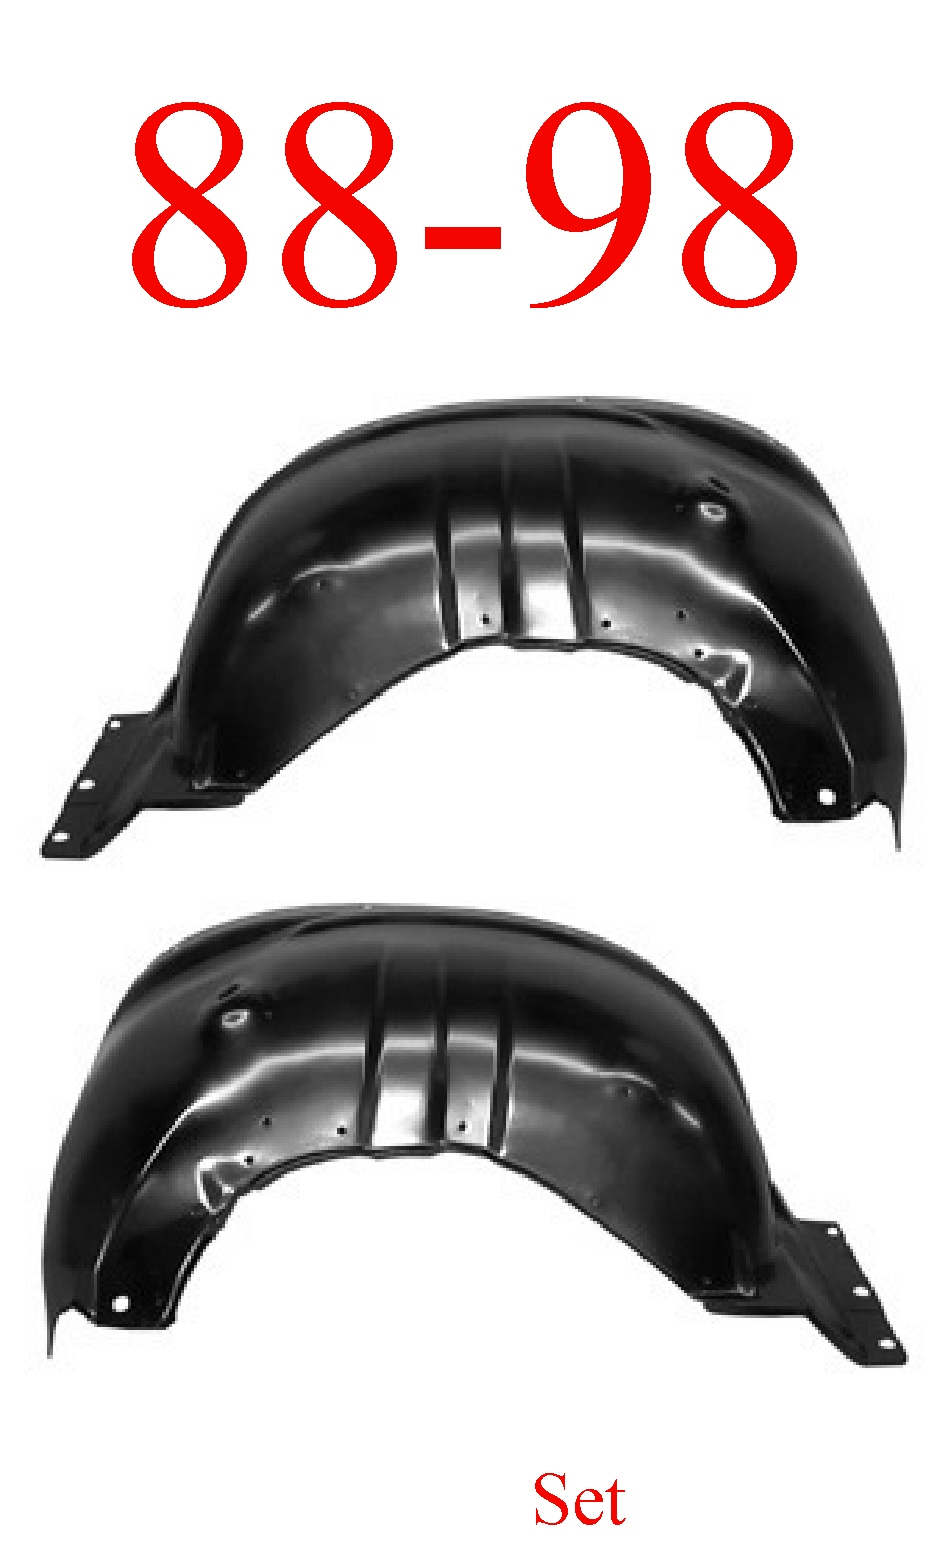 88-98 Chevy Inner Front Fender Set